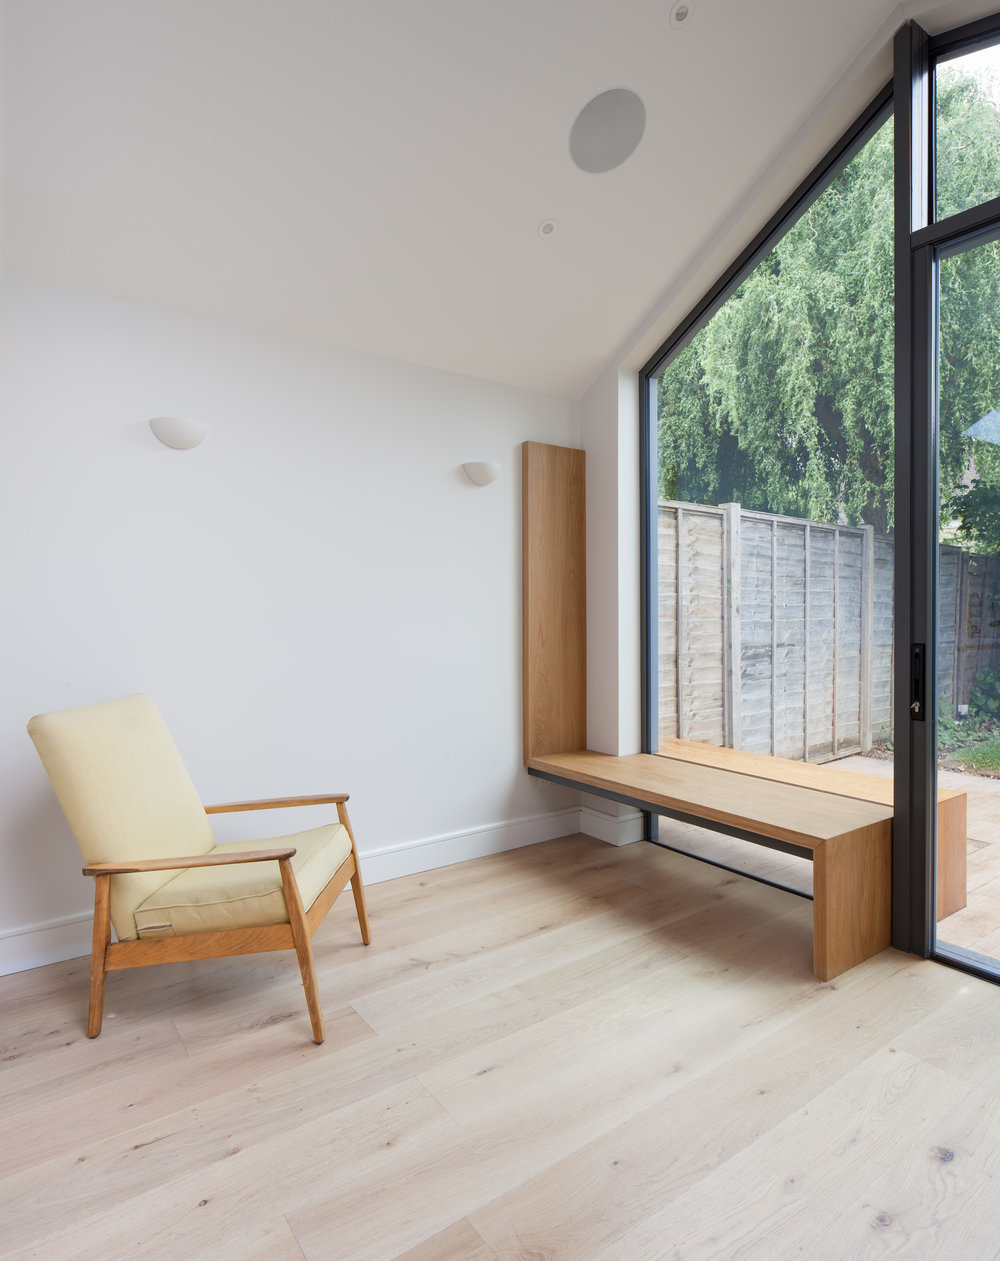 Balham extension photographed by Whitaker Studio